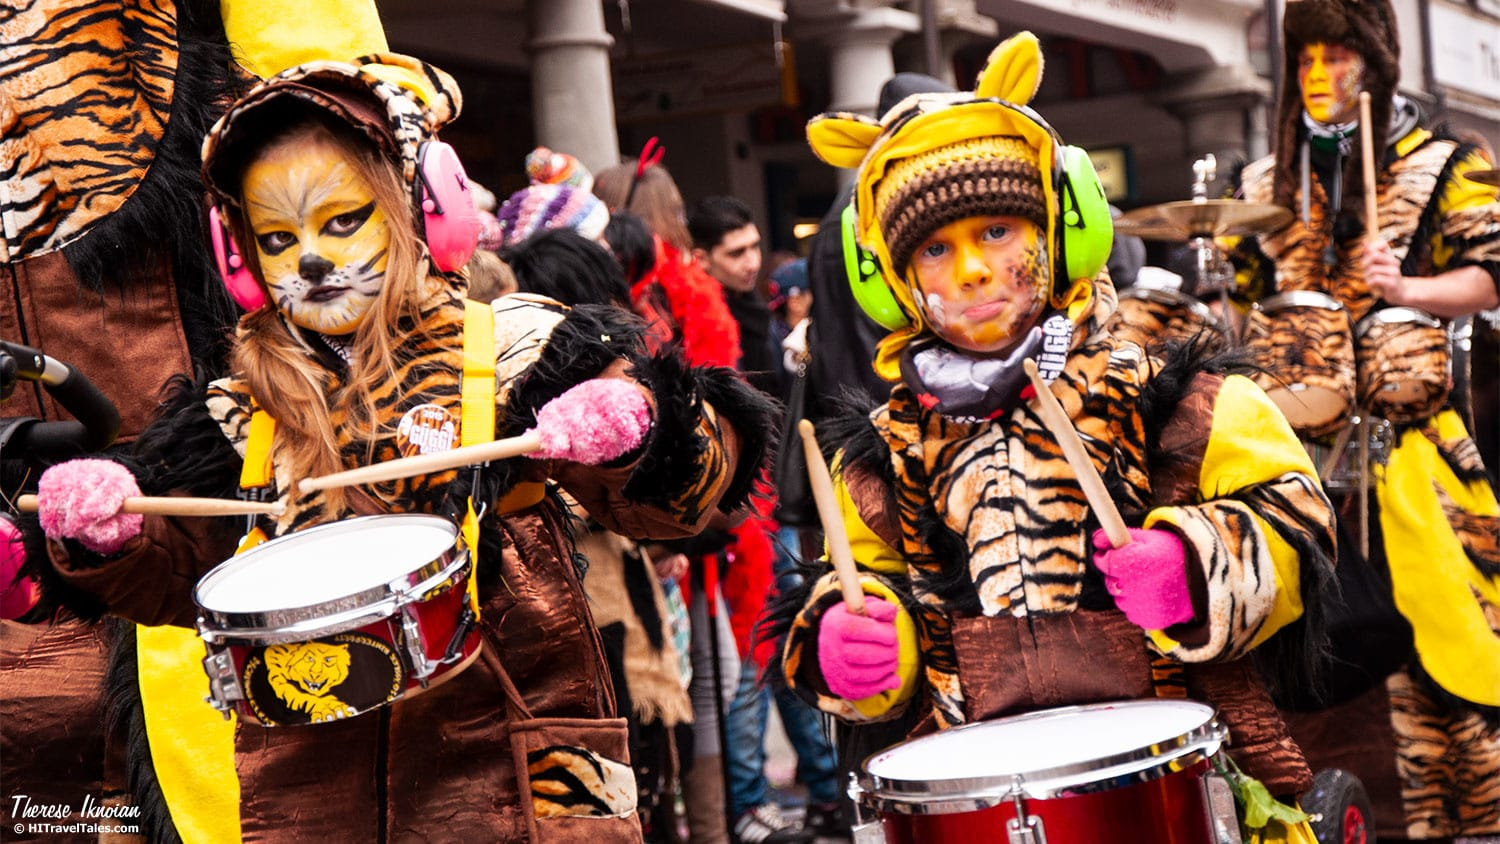 OK, so it may not have been perfected drumming, but it made noise! And for these tigers that's all that mattered.